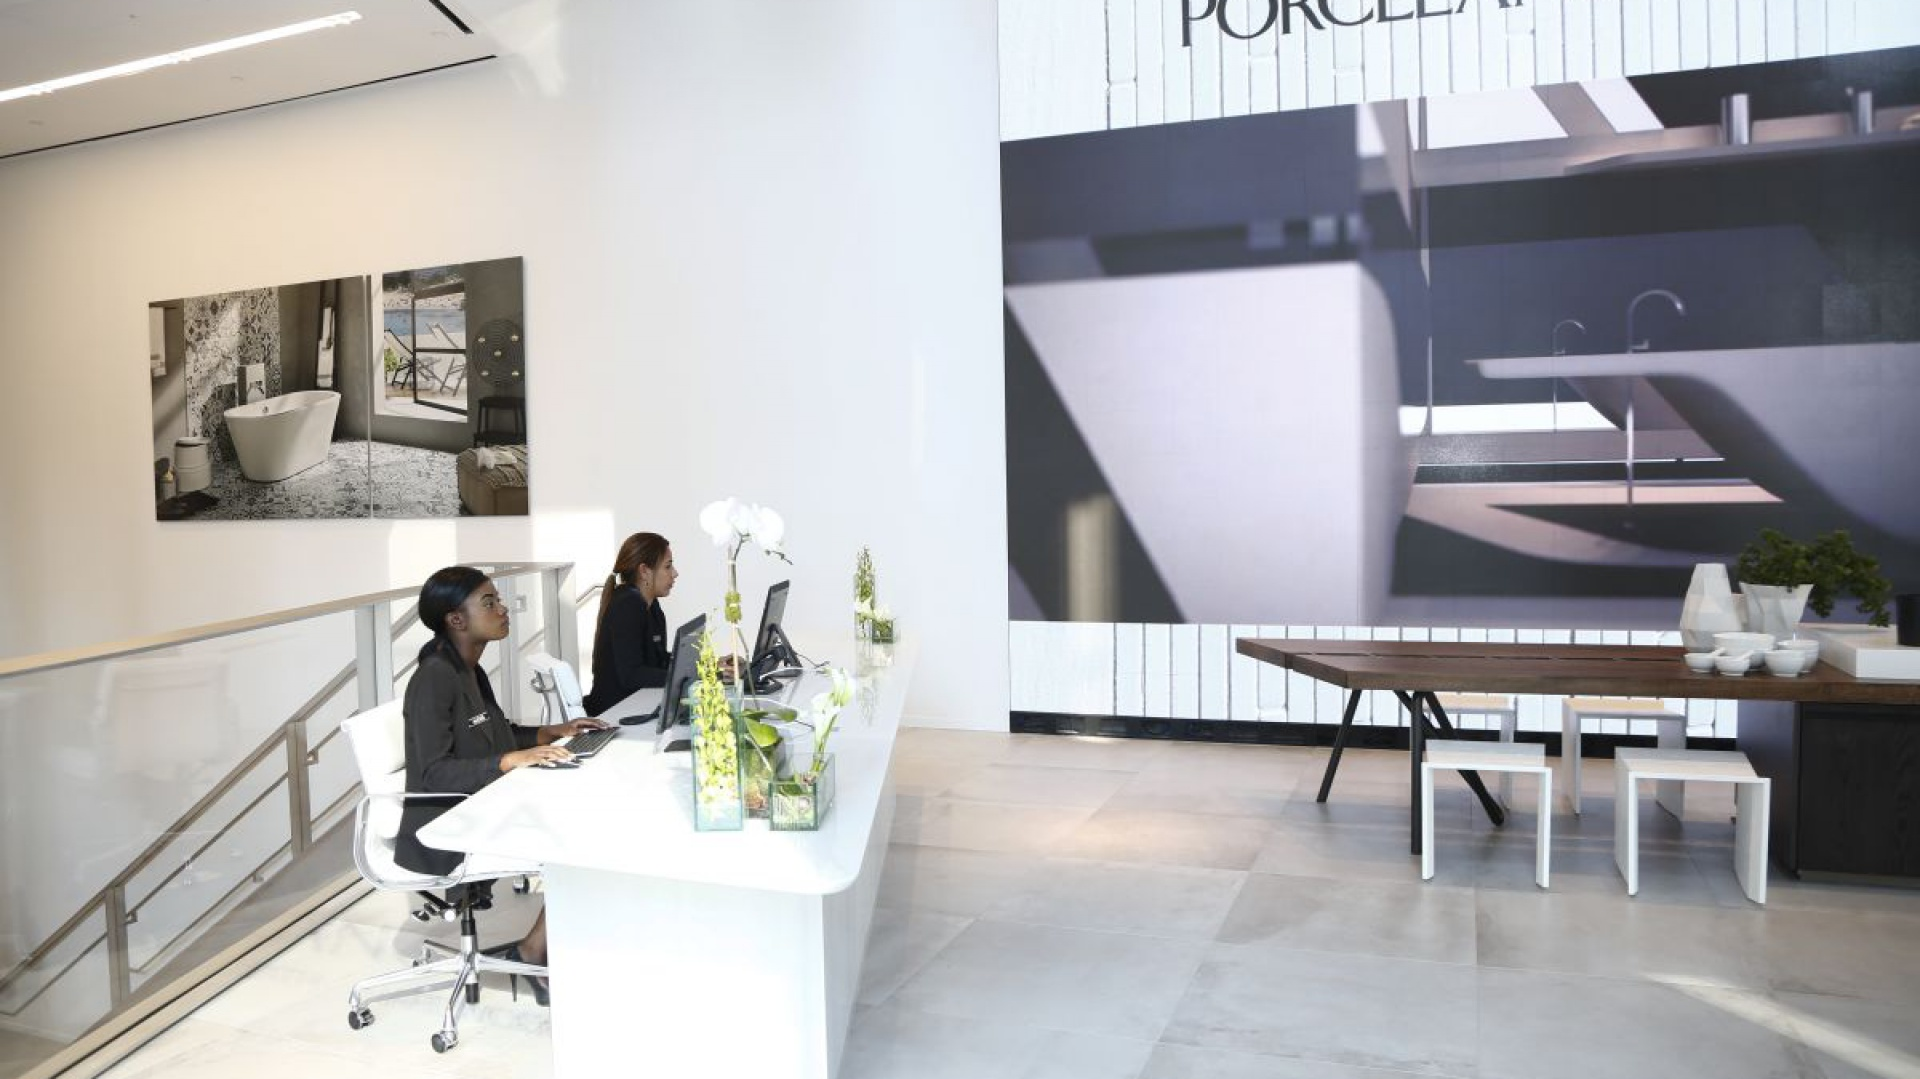 Porcelanosa Fifth Avenue (2)_small.jpg